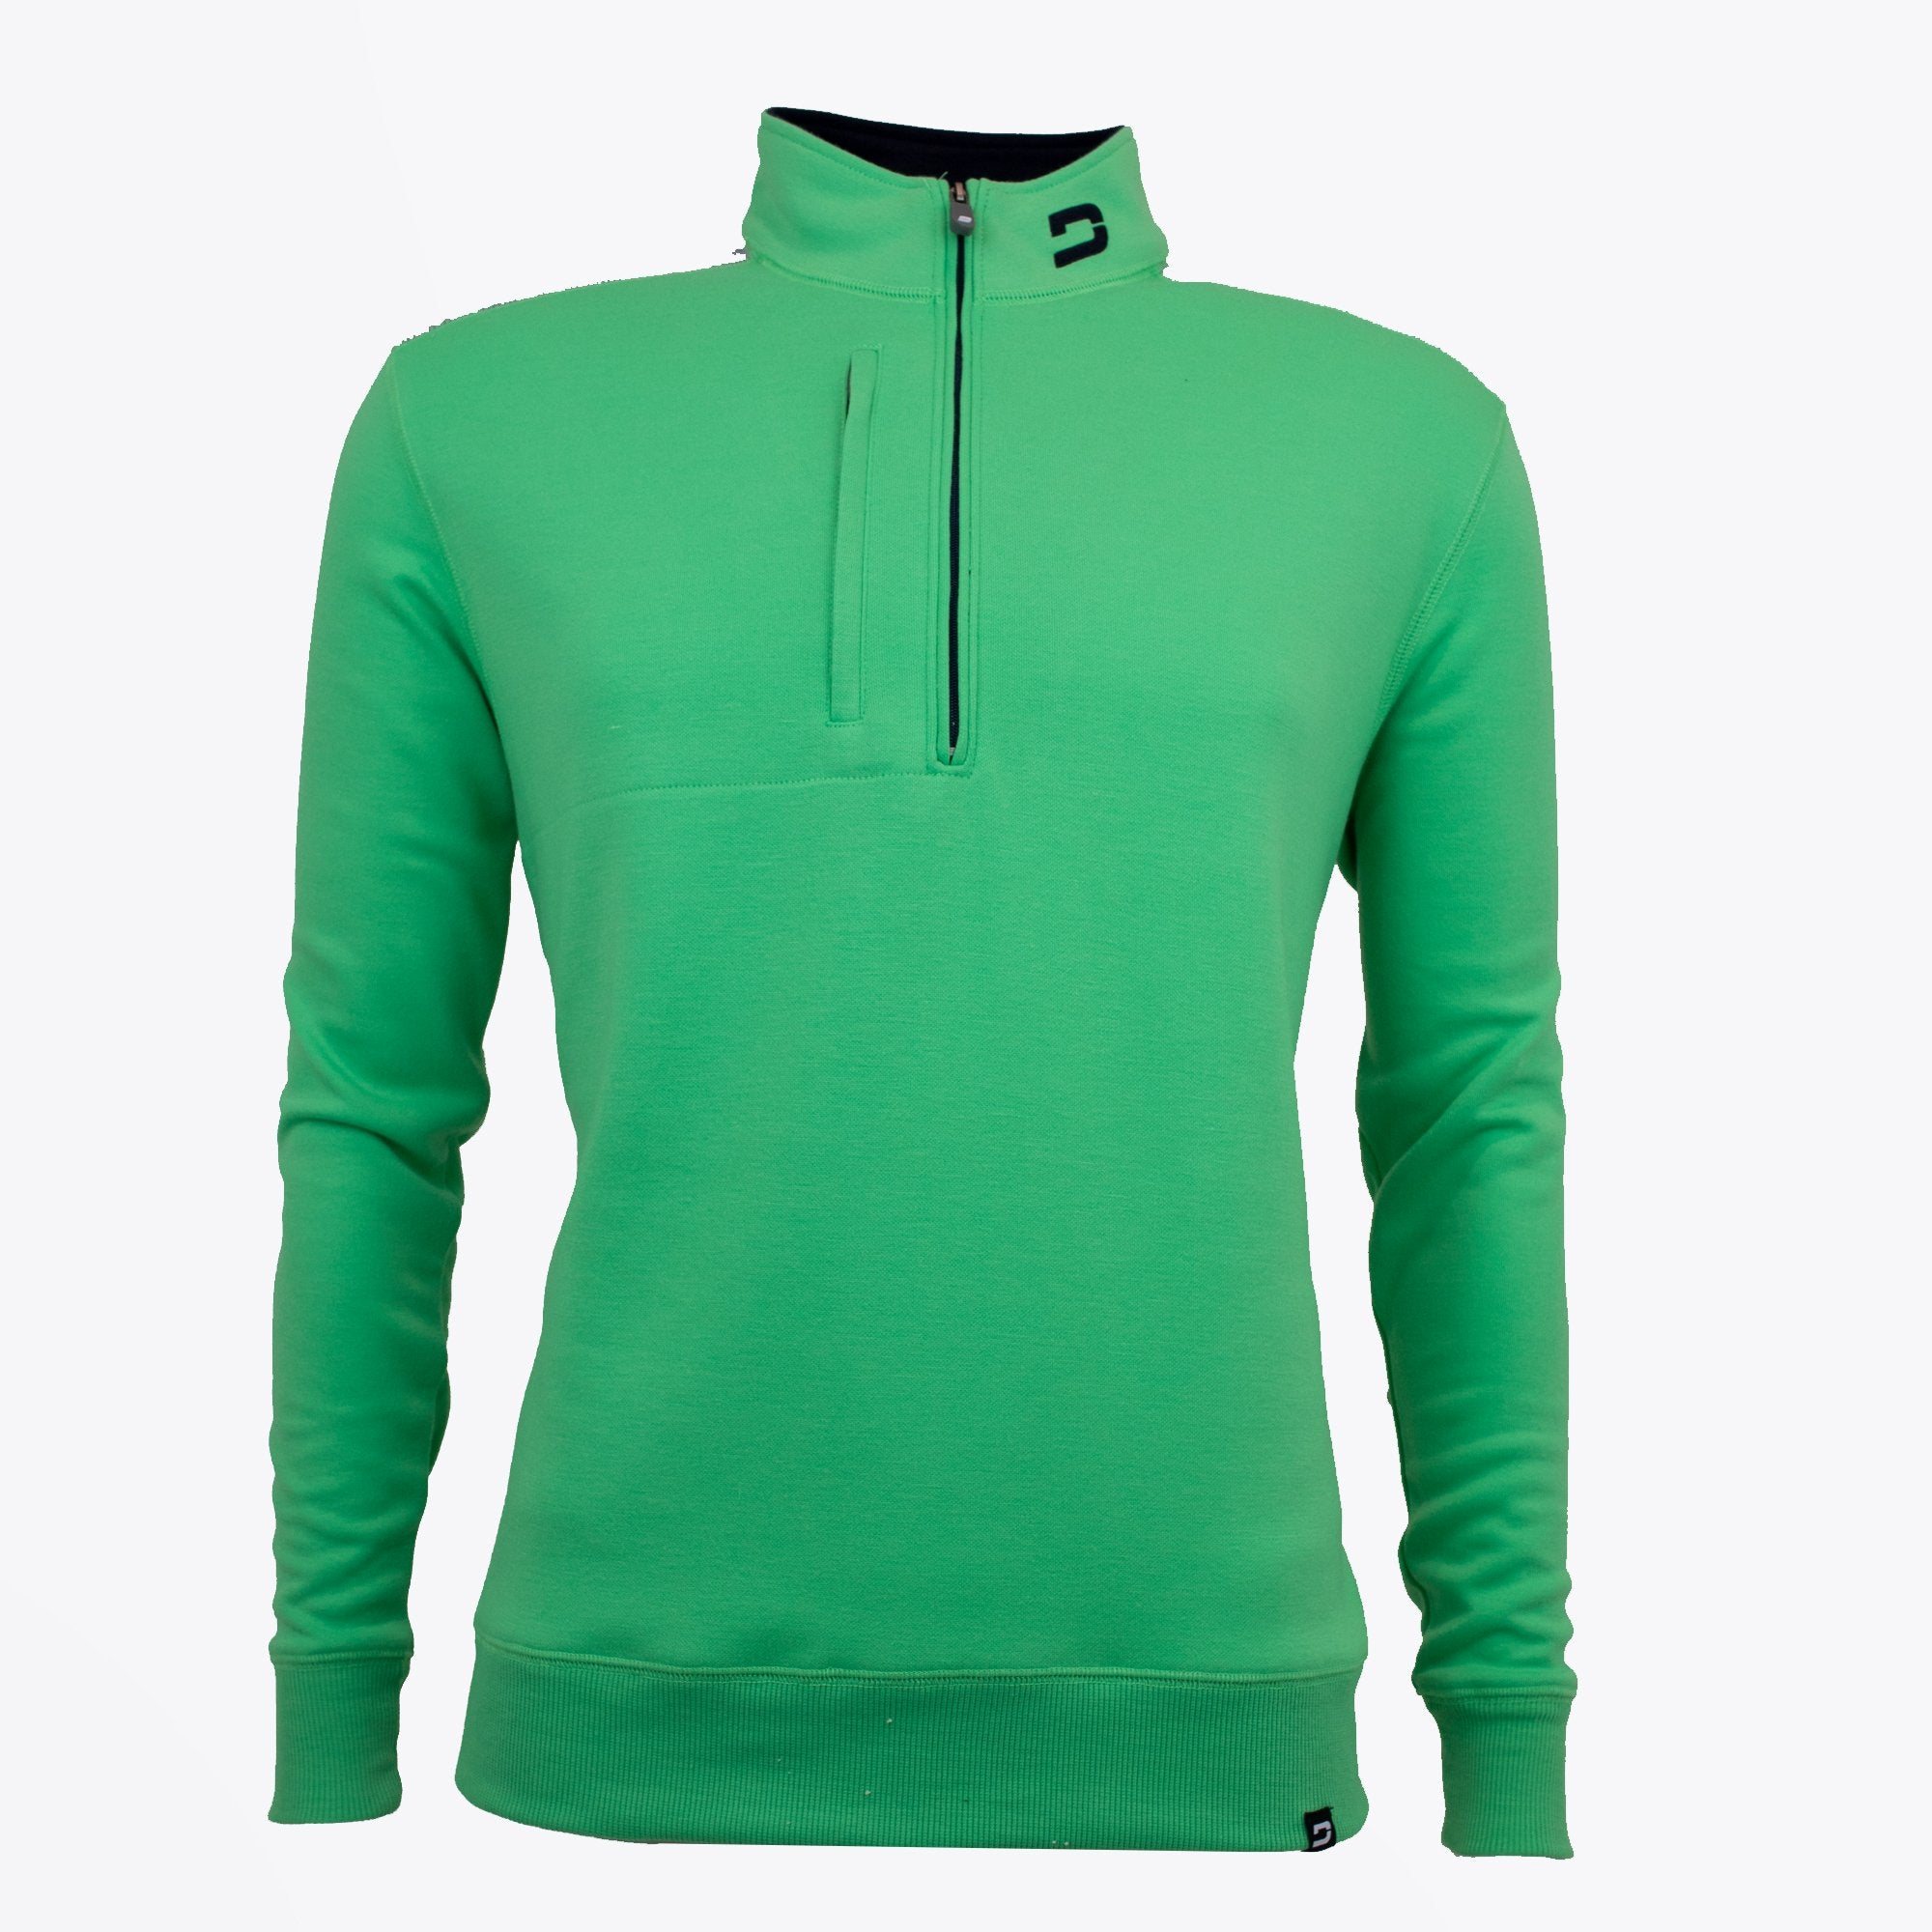 Druids Golf - Mens Two Tone 1/4 Zip (Green)